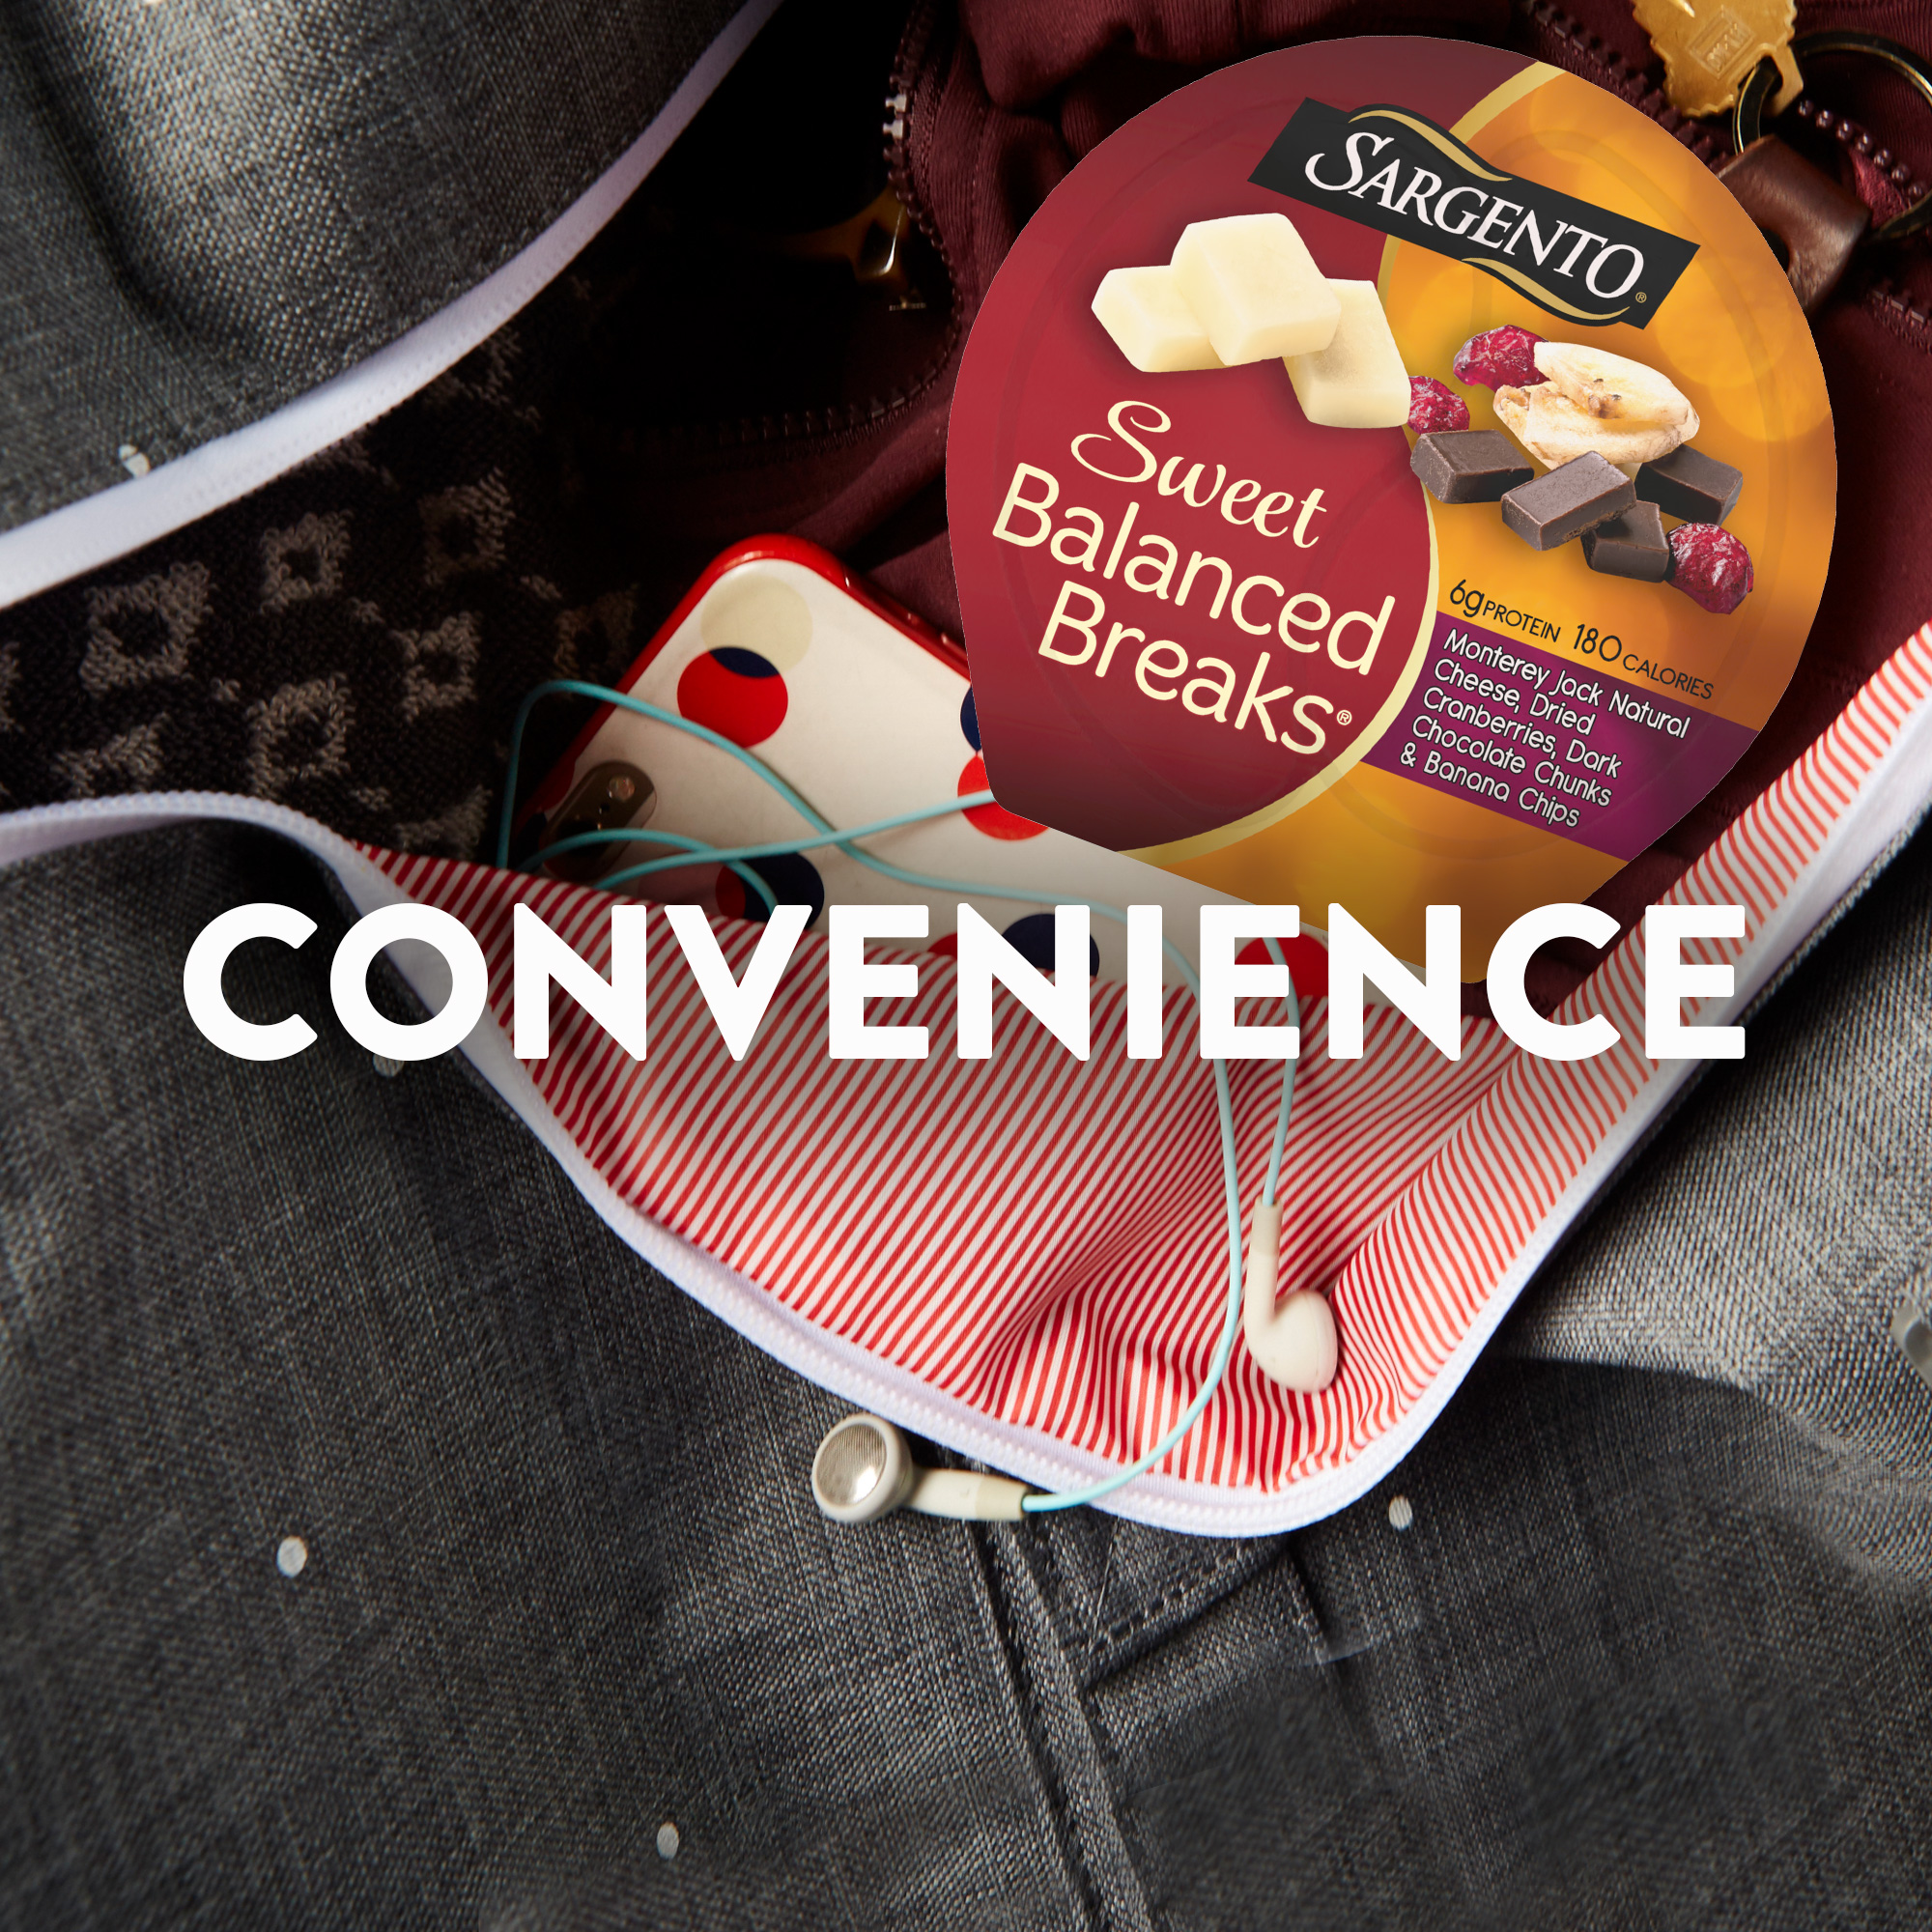 Sargento® Sweet Balanced Breaks®, Monterey Jack Natural Cheese, Dried Cranberries, Dark Chocolate Chunks & Banana Chips